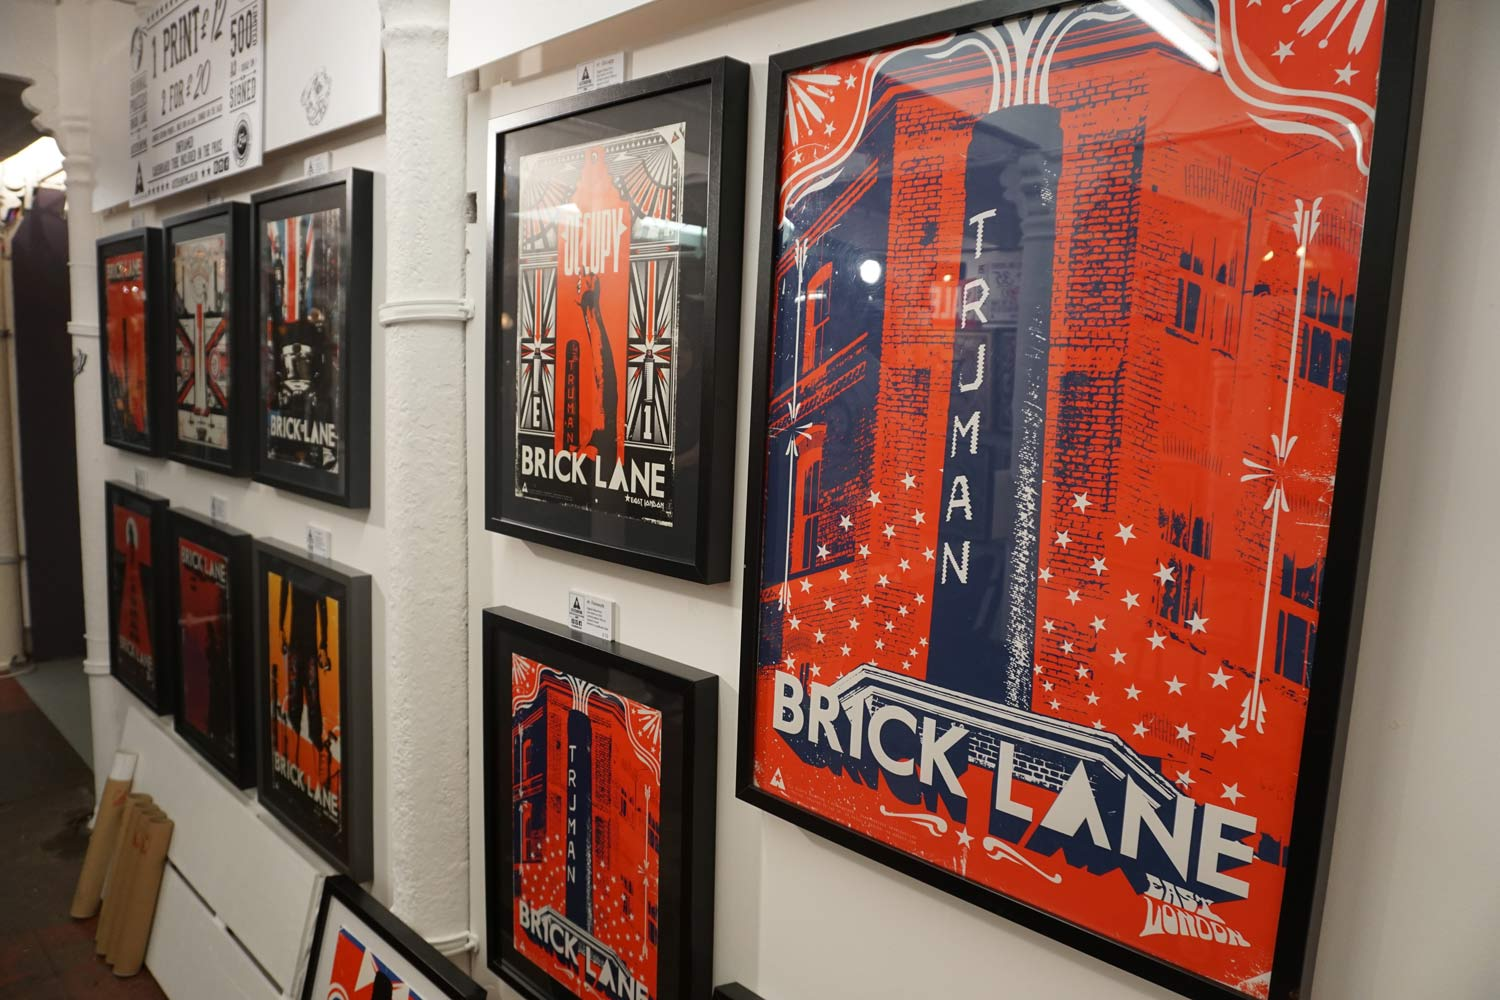 Brick Lane Markets, Sunday Upmarket, Backyard Market, Tea Rooms, Vintage Market